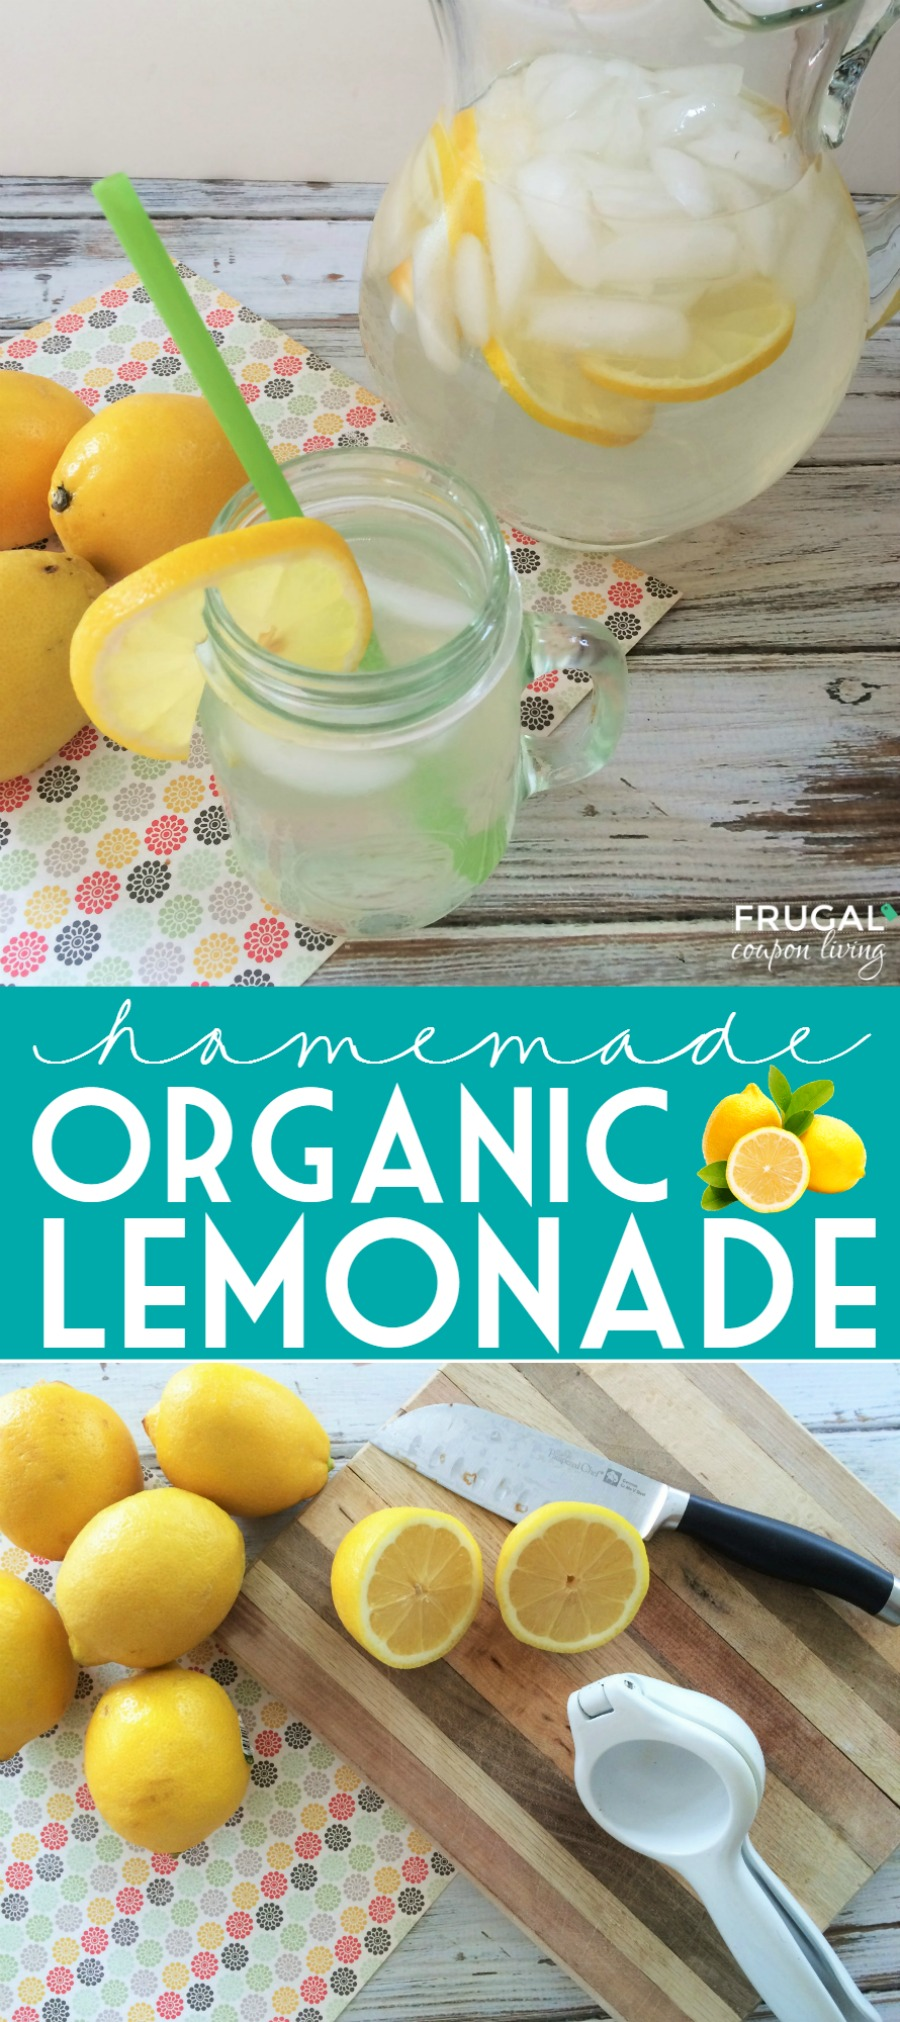 homemade-organic-lemonade-frugal-coupon-living